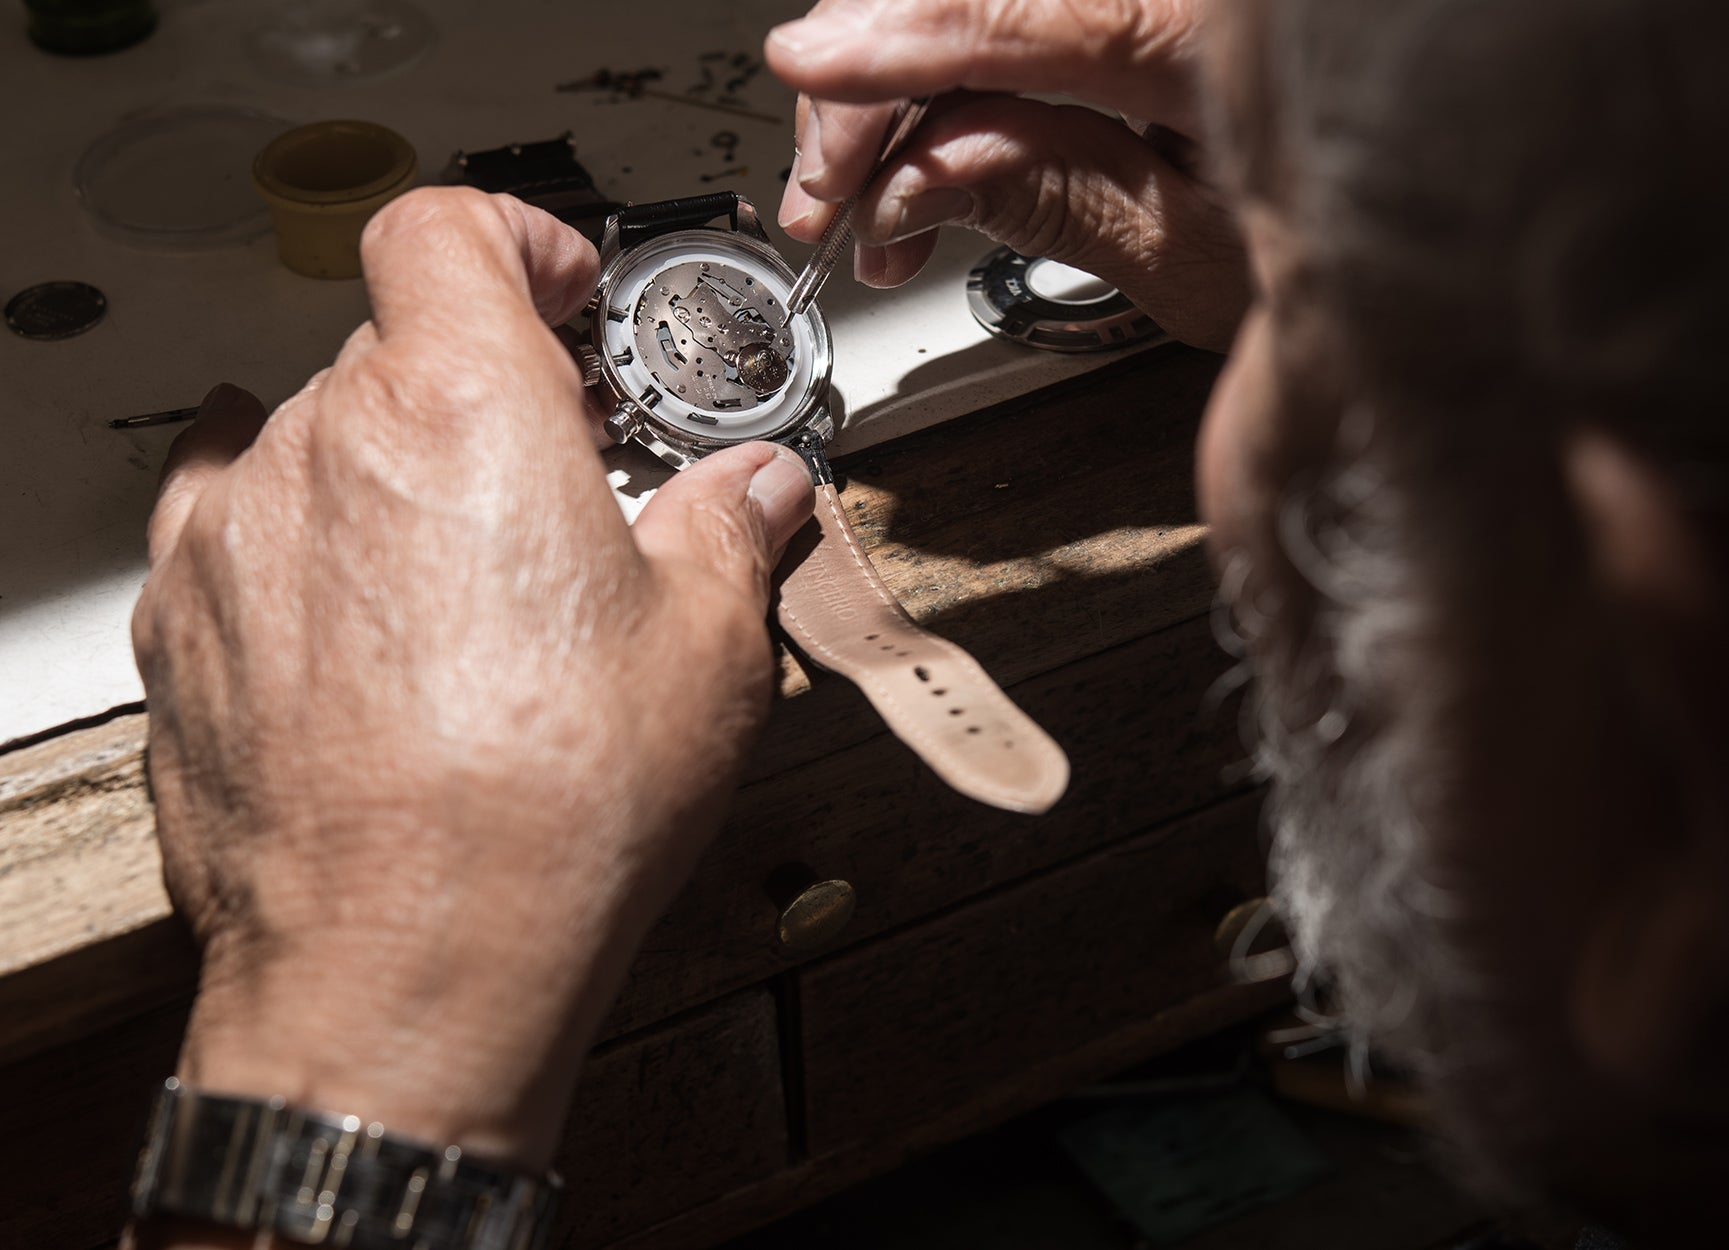 Man working with the opened back case of watch